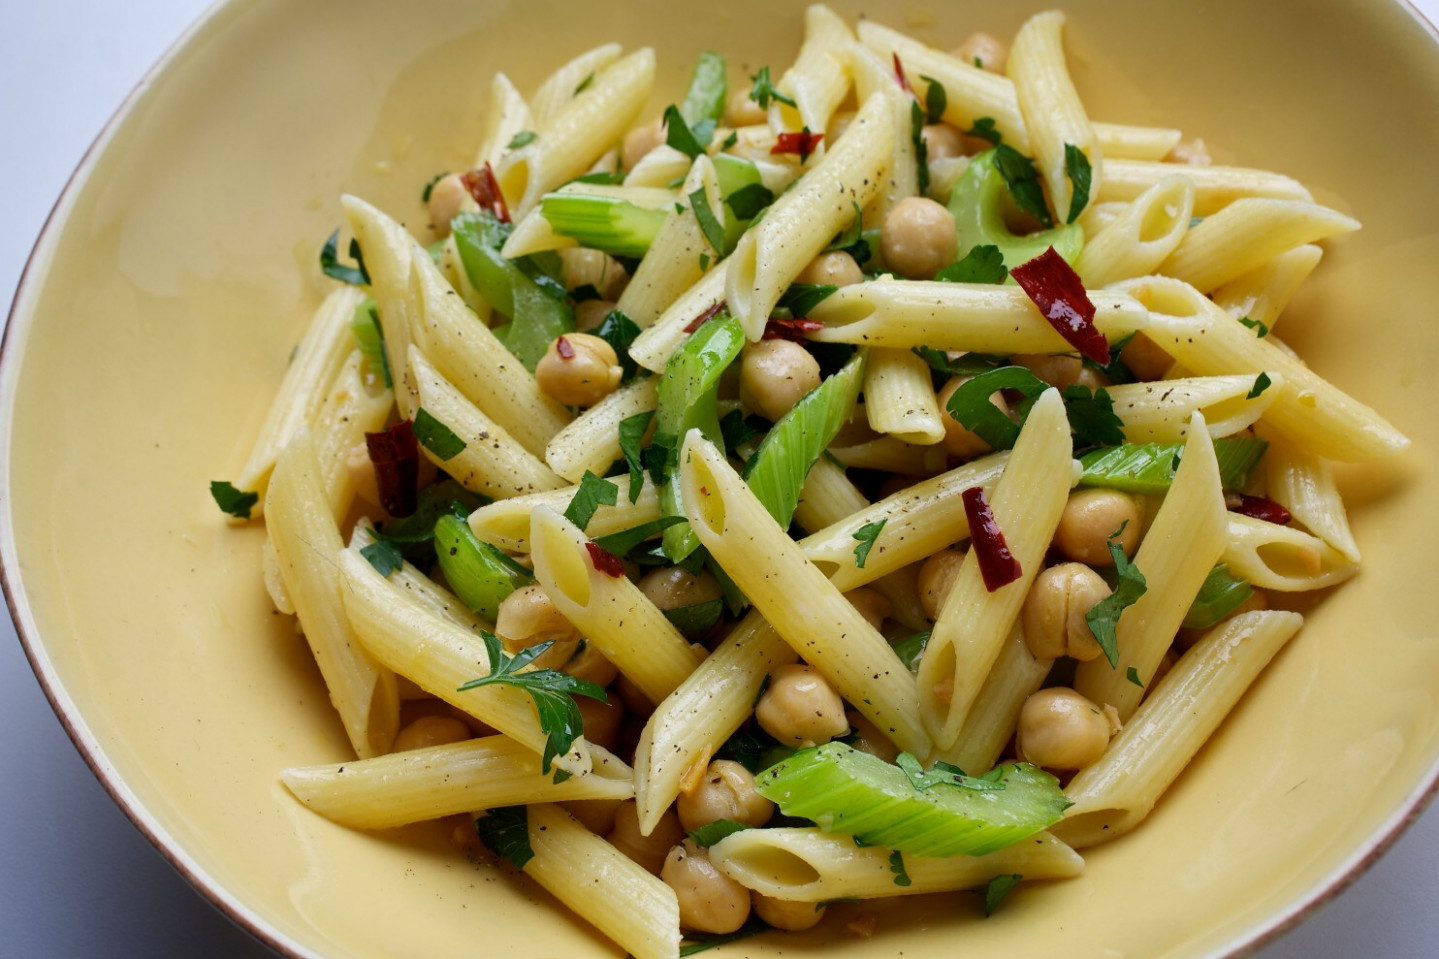 Easy and fast vegetarian pasta recipes - The Washington Post